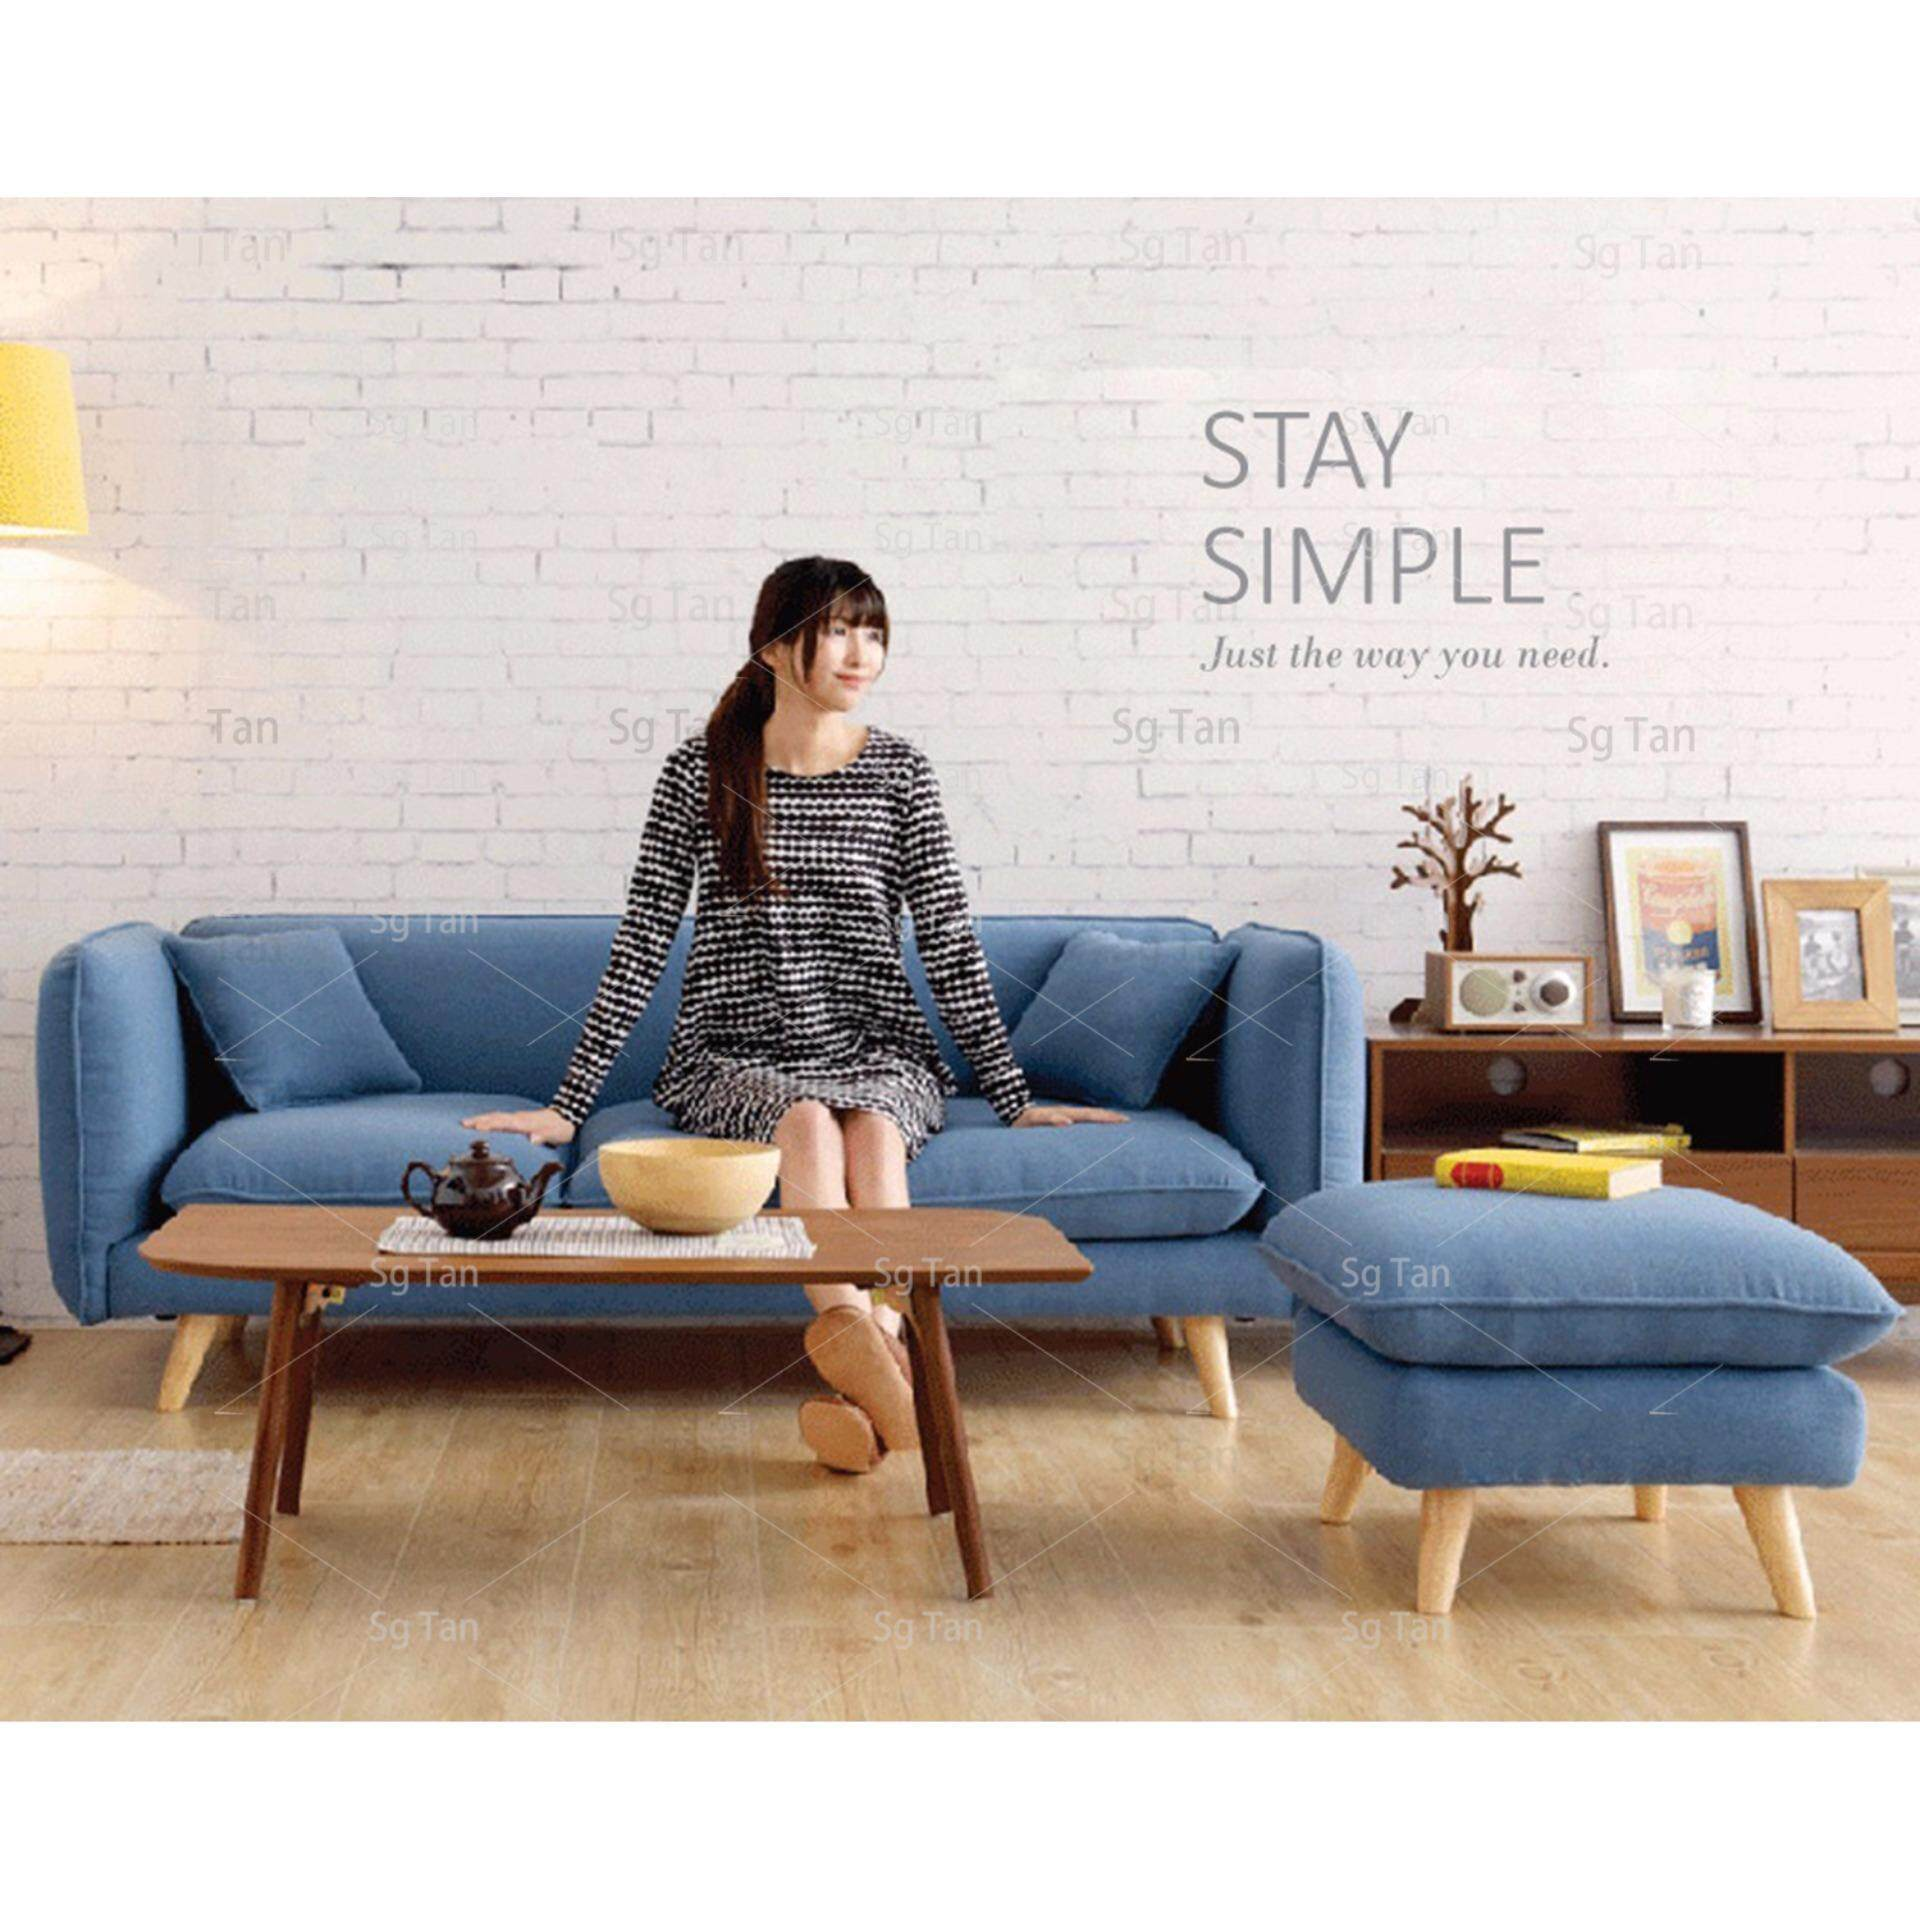 Home Sofas - Buy Home Sofas at Best Price in Malaysia | www.lazada ...